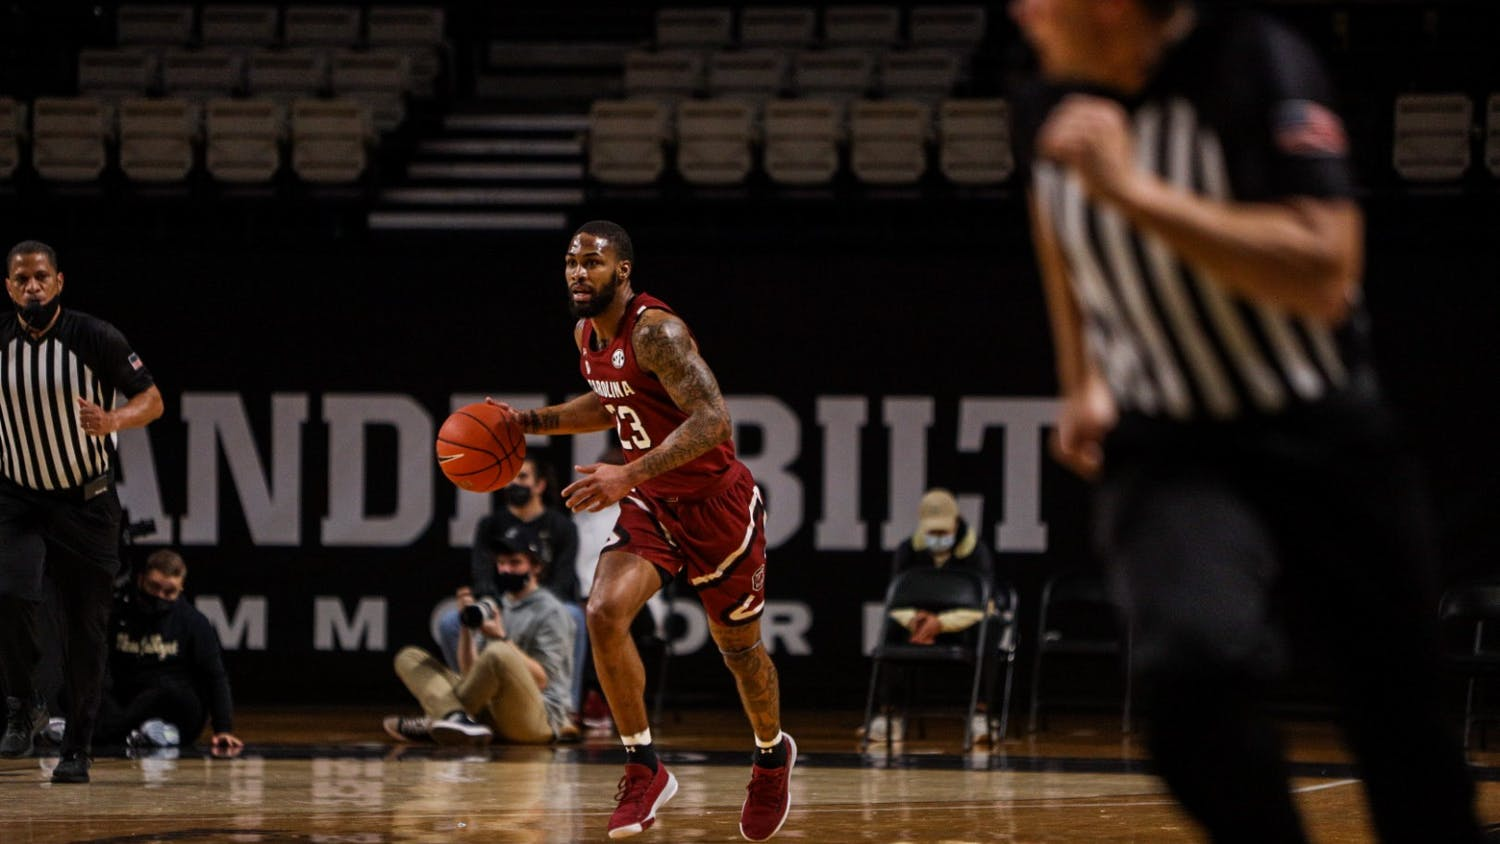 Redshirt senior Seventh Woods dribbles the ball down the court during South Carolina's game at Vanderbilt. South Carolina lost 93-81.